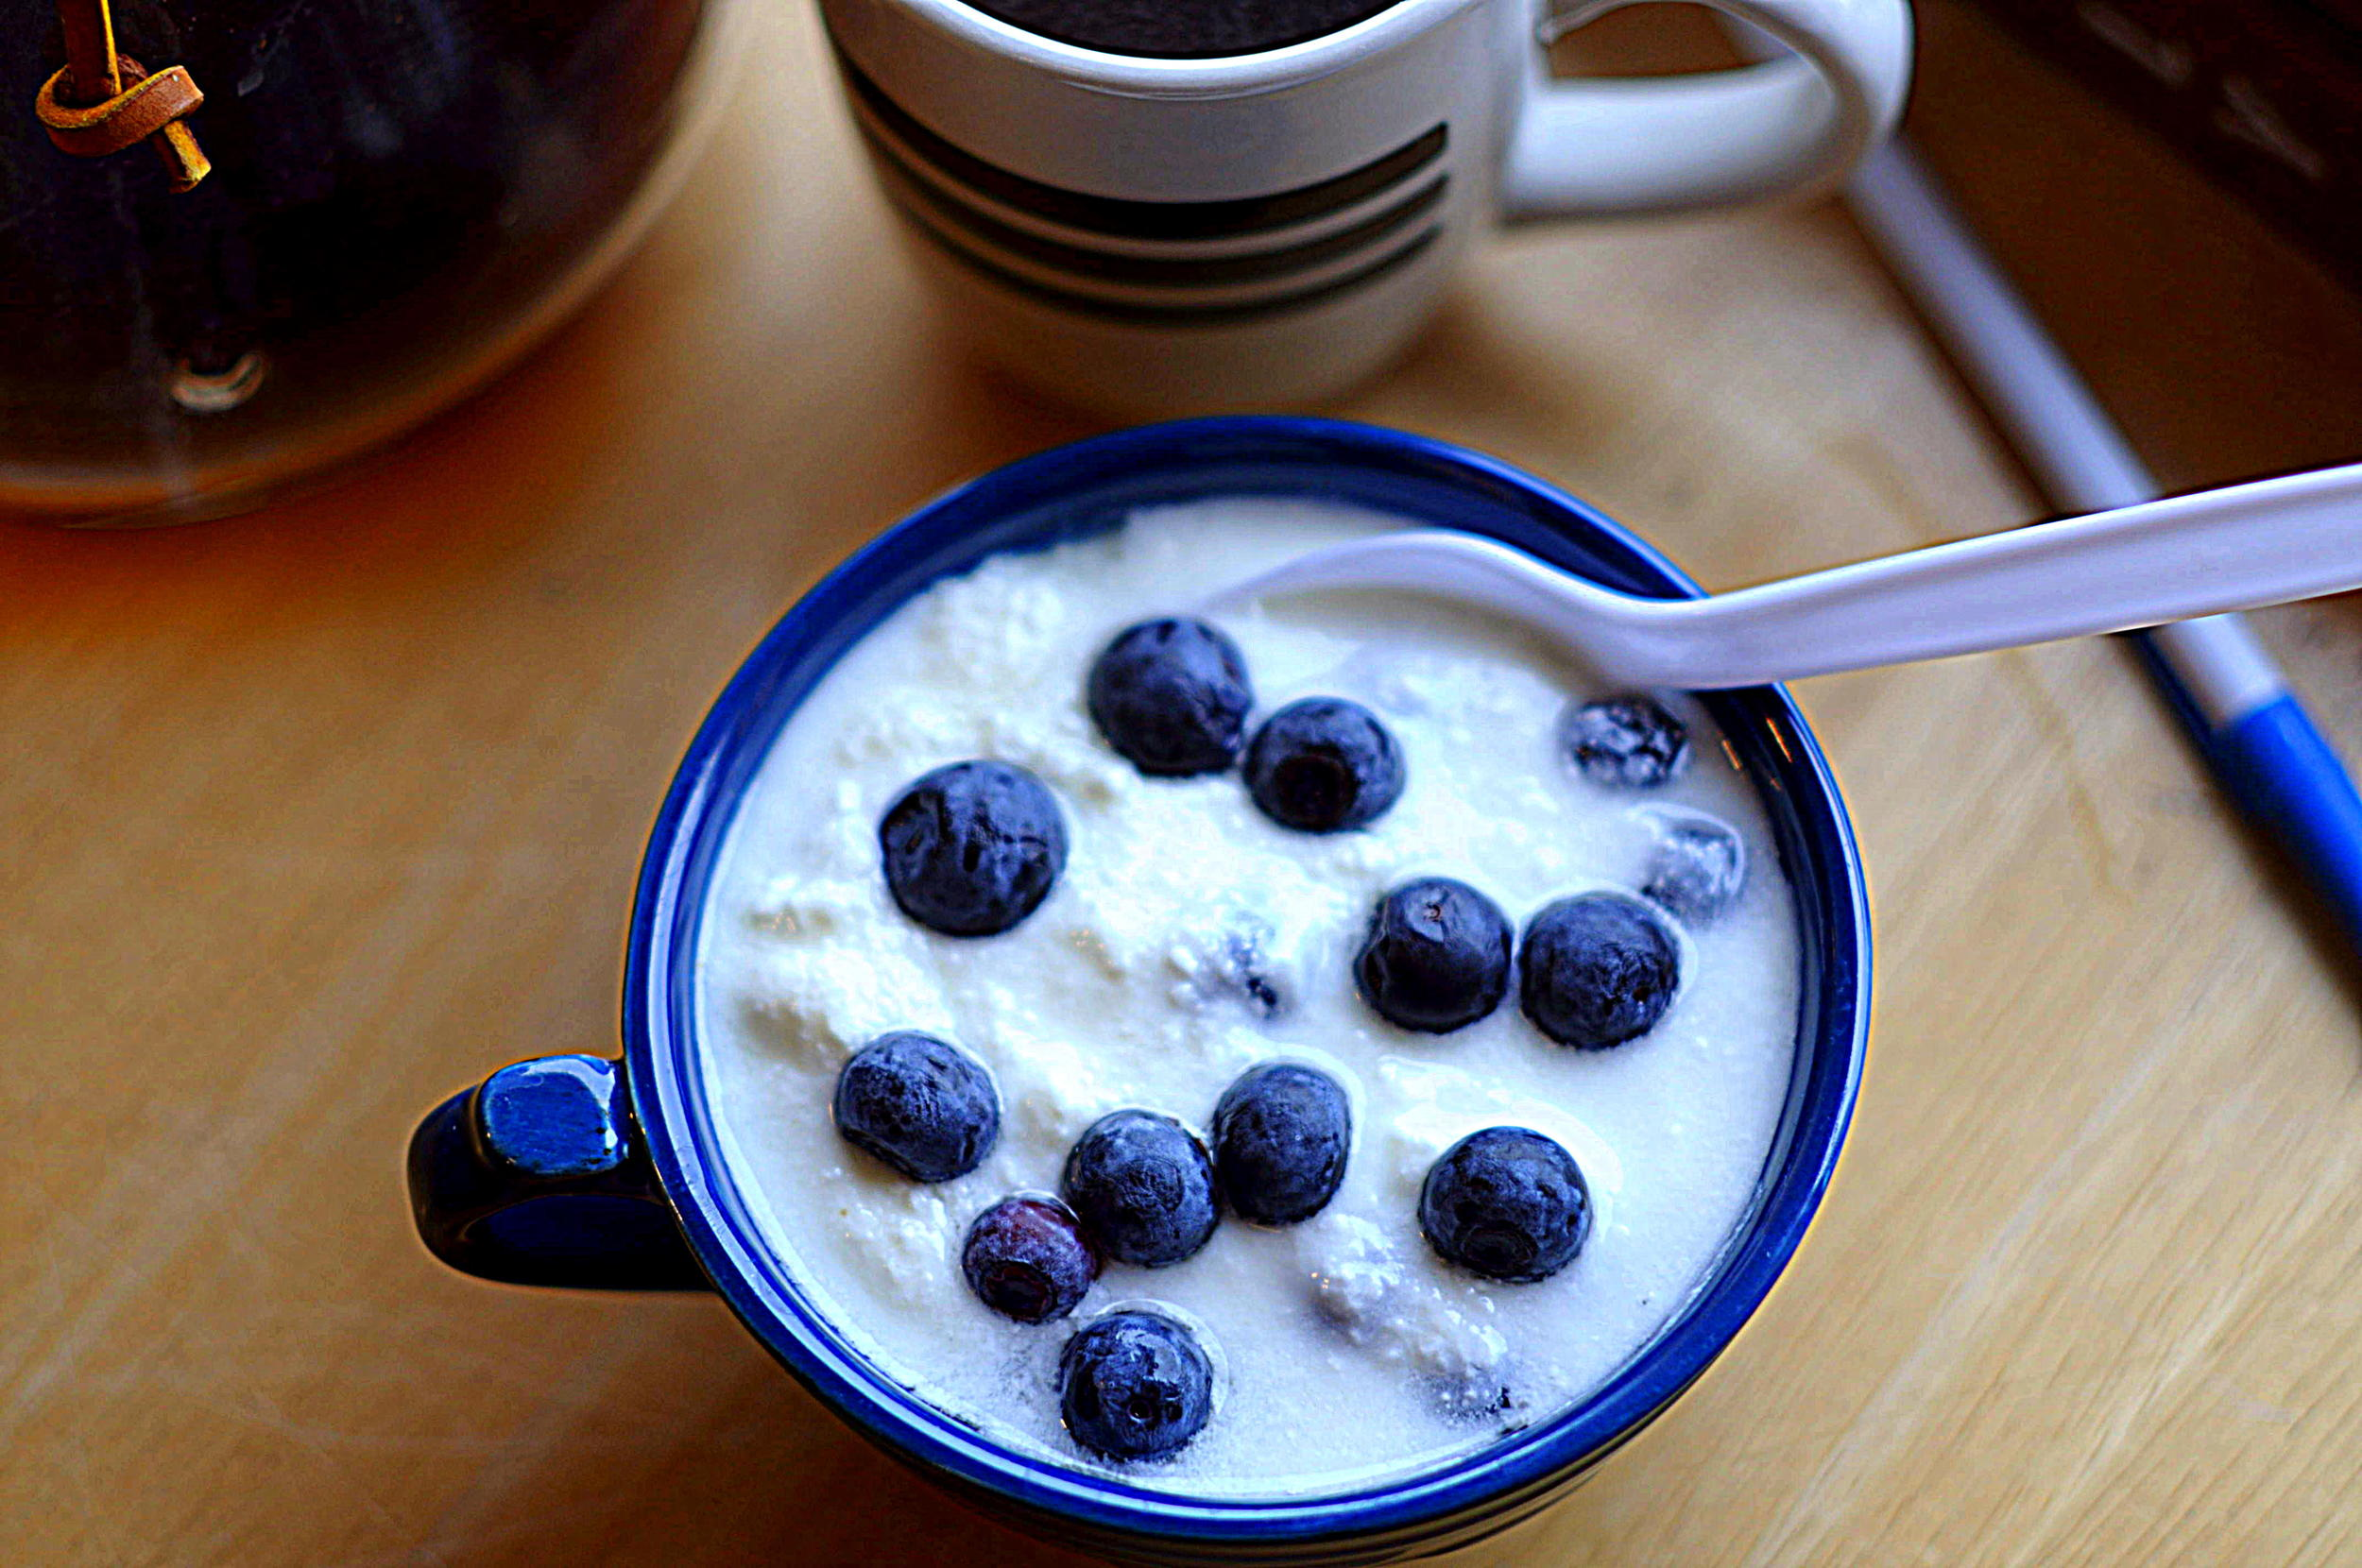 Home-made Yogurt & Blueberries